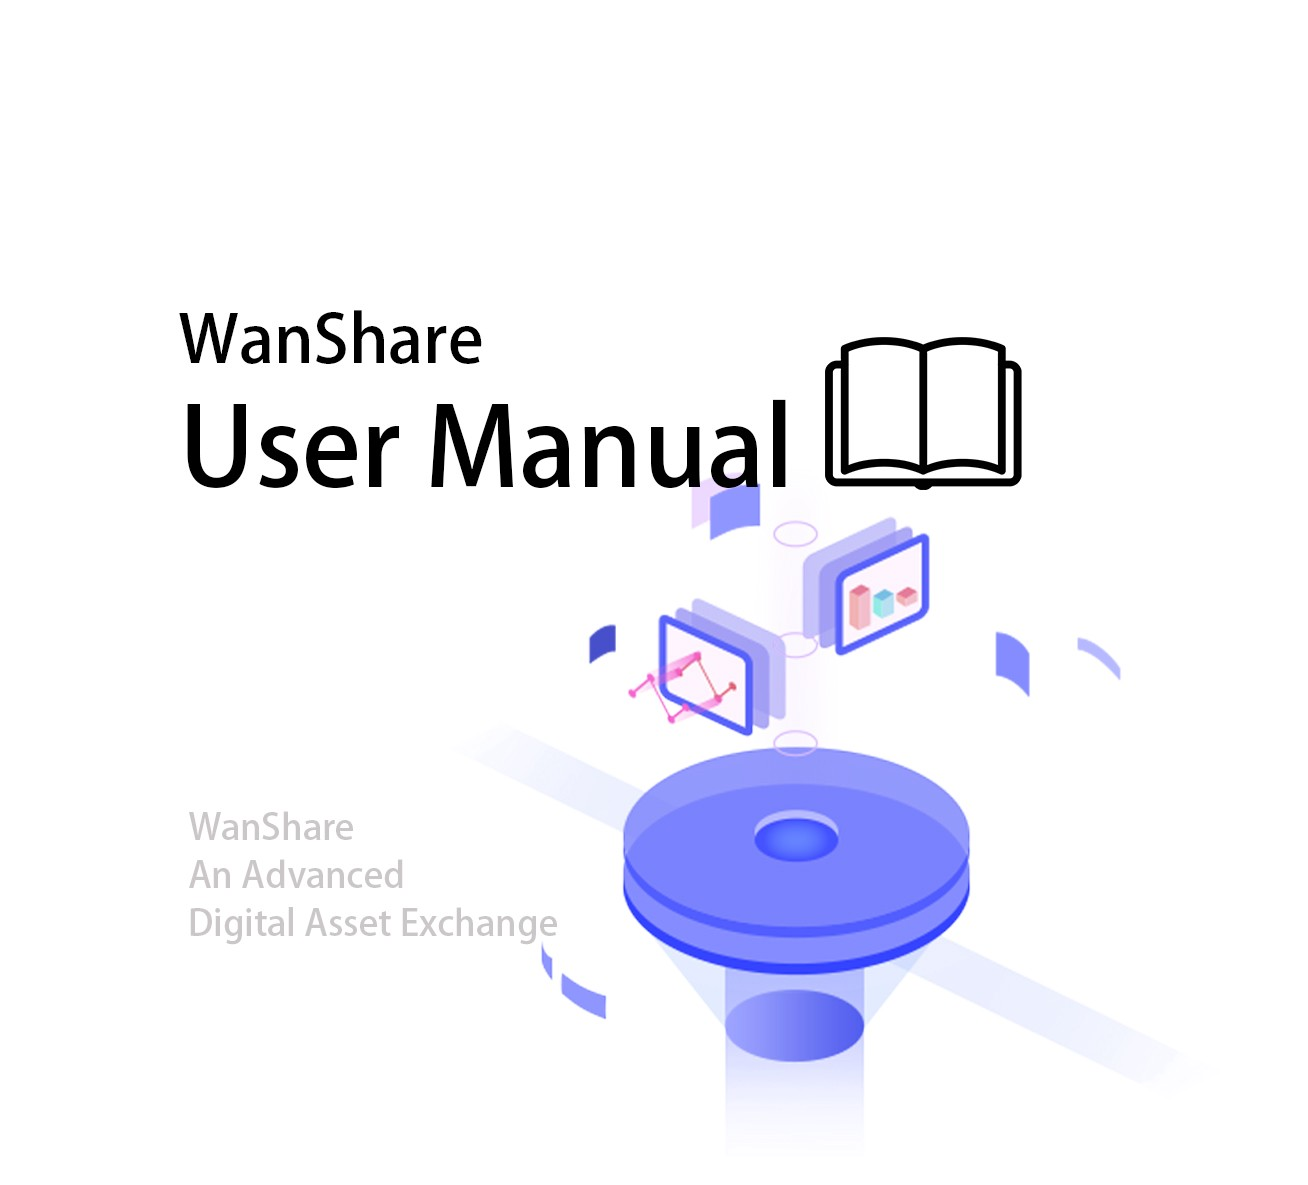 WanShare user manual 5: Link bank account, Alipay or Wechat